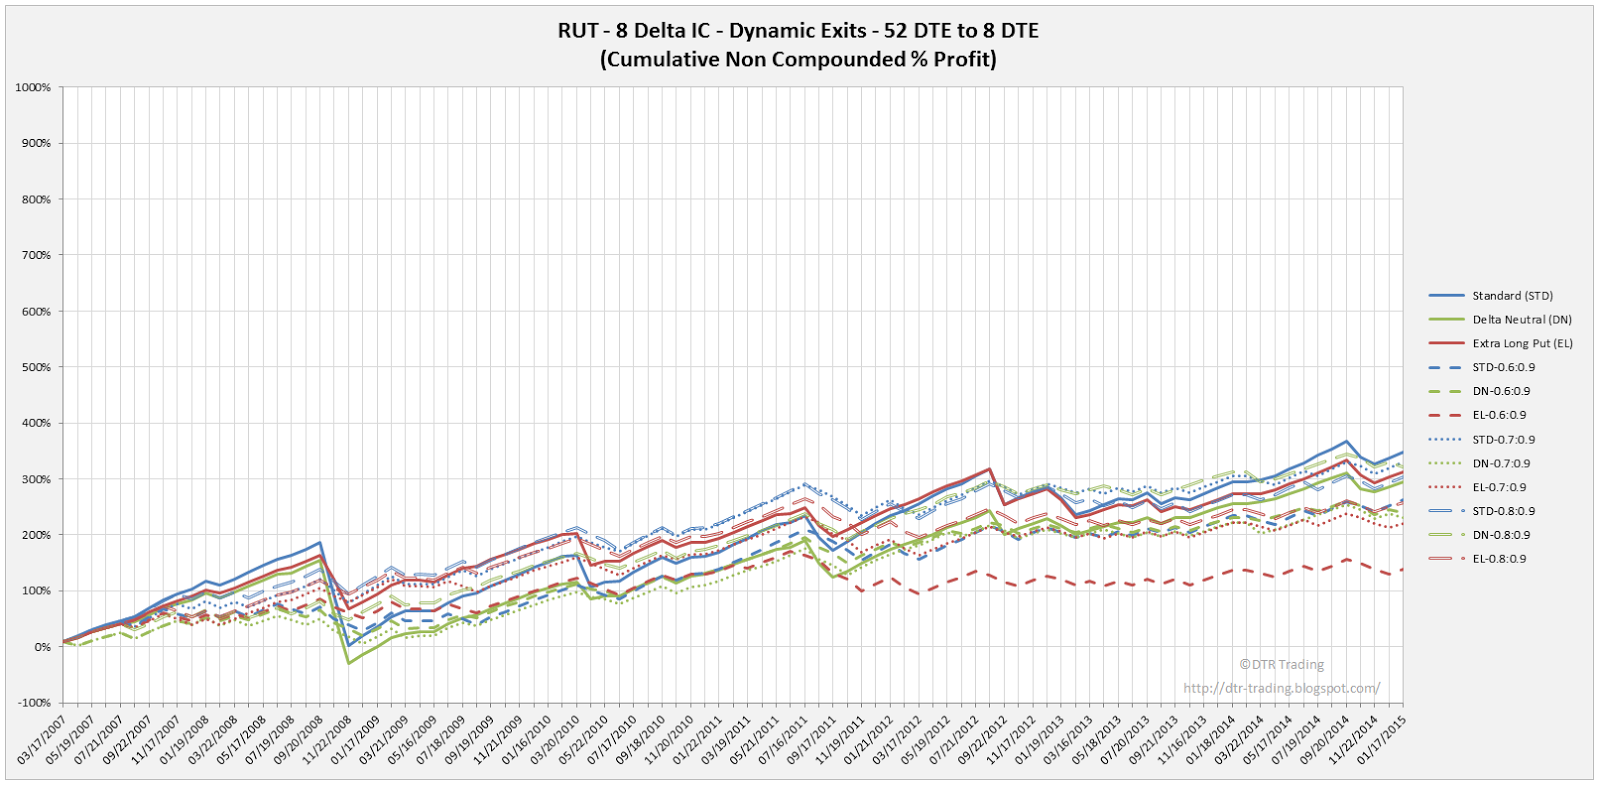 Iron Condor Dynamic Exit Equity Curves RUT 52 DTE 8 Delta Risk:Reward Versions